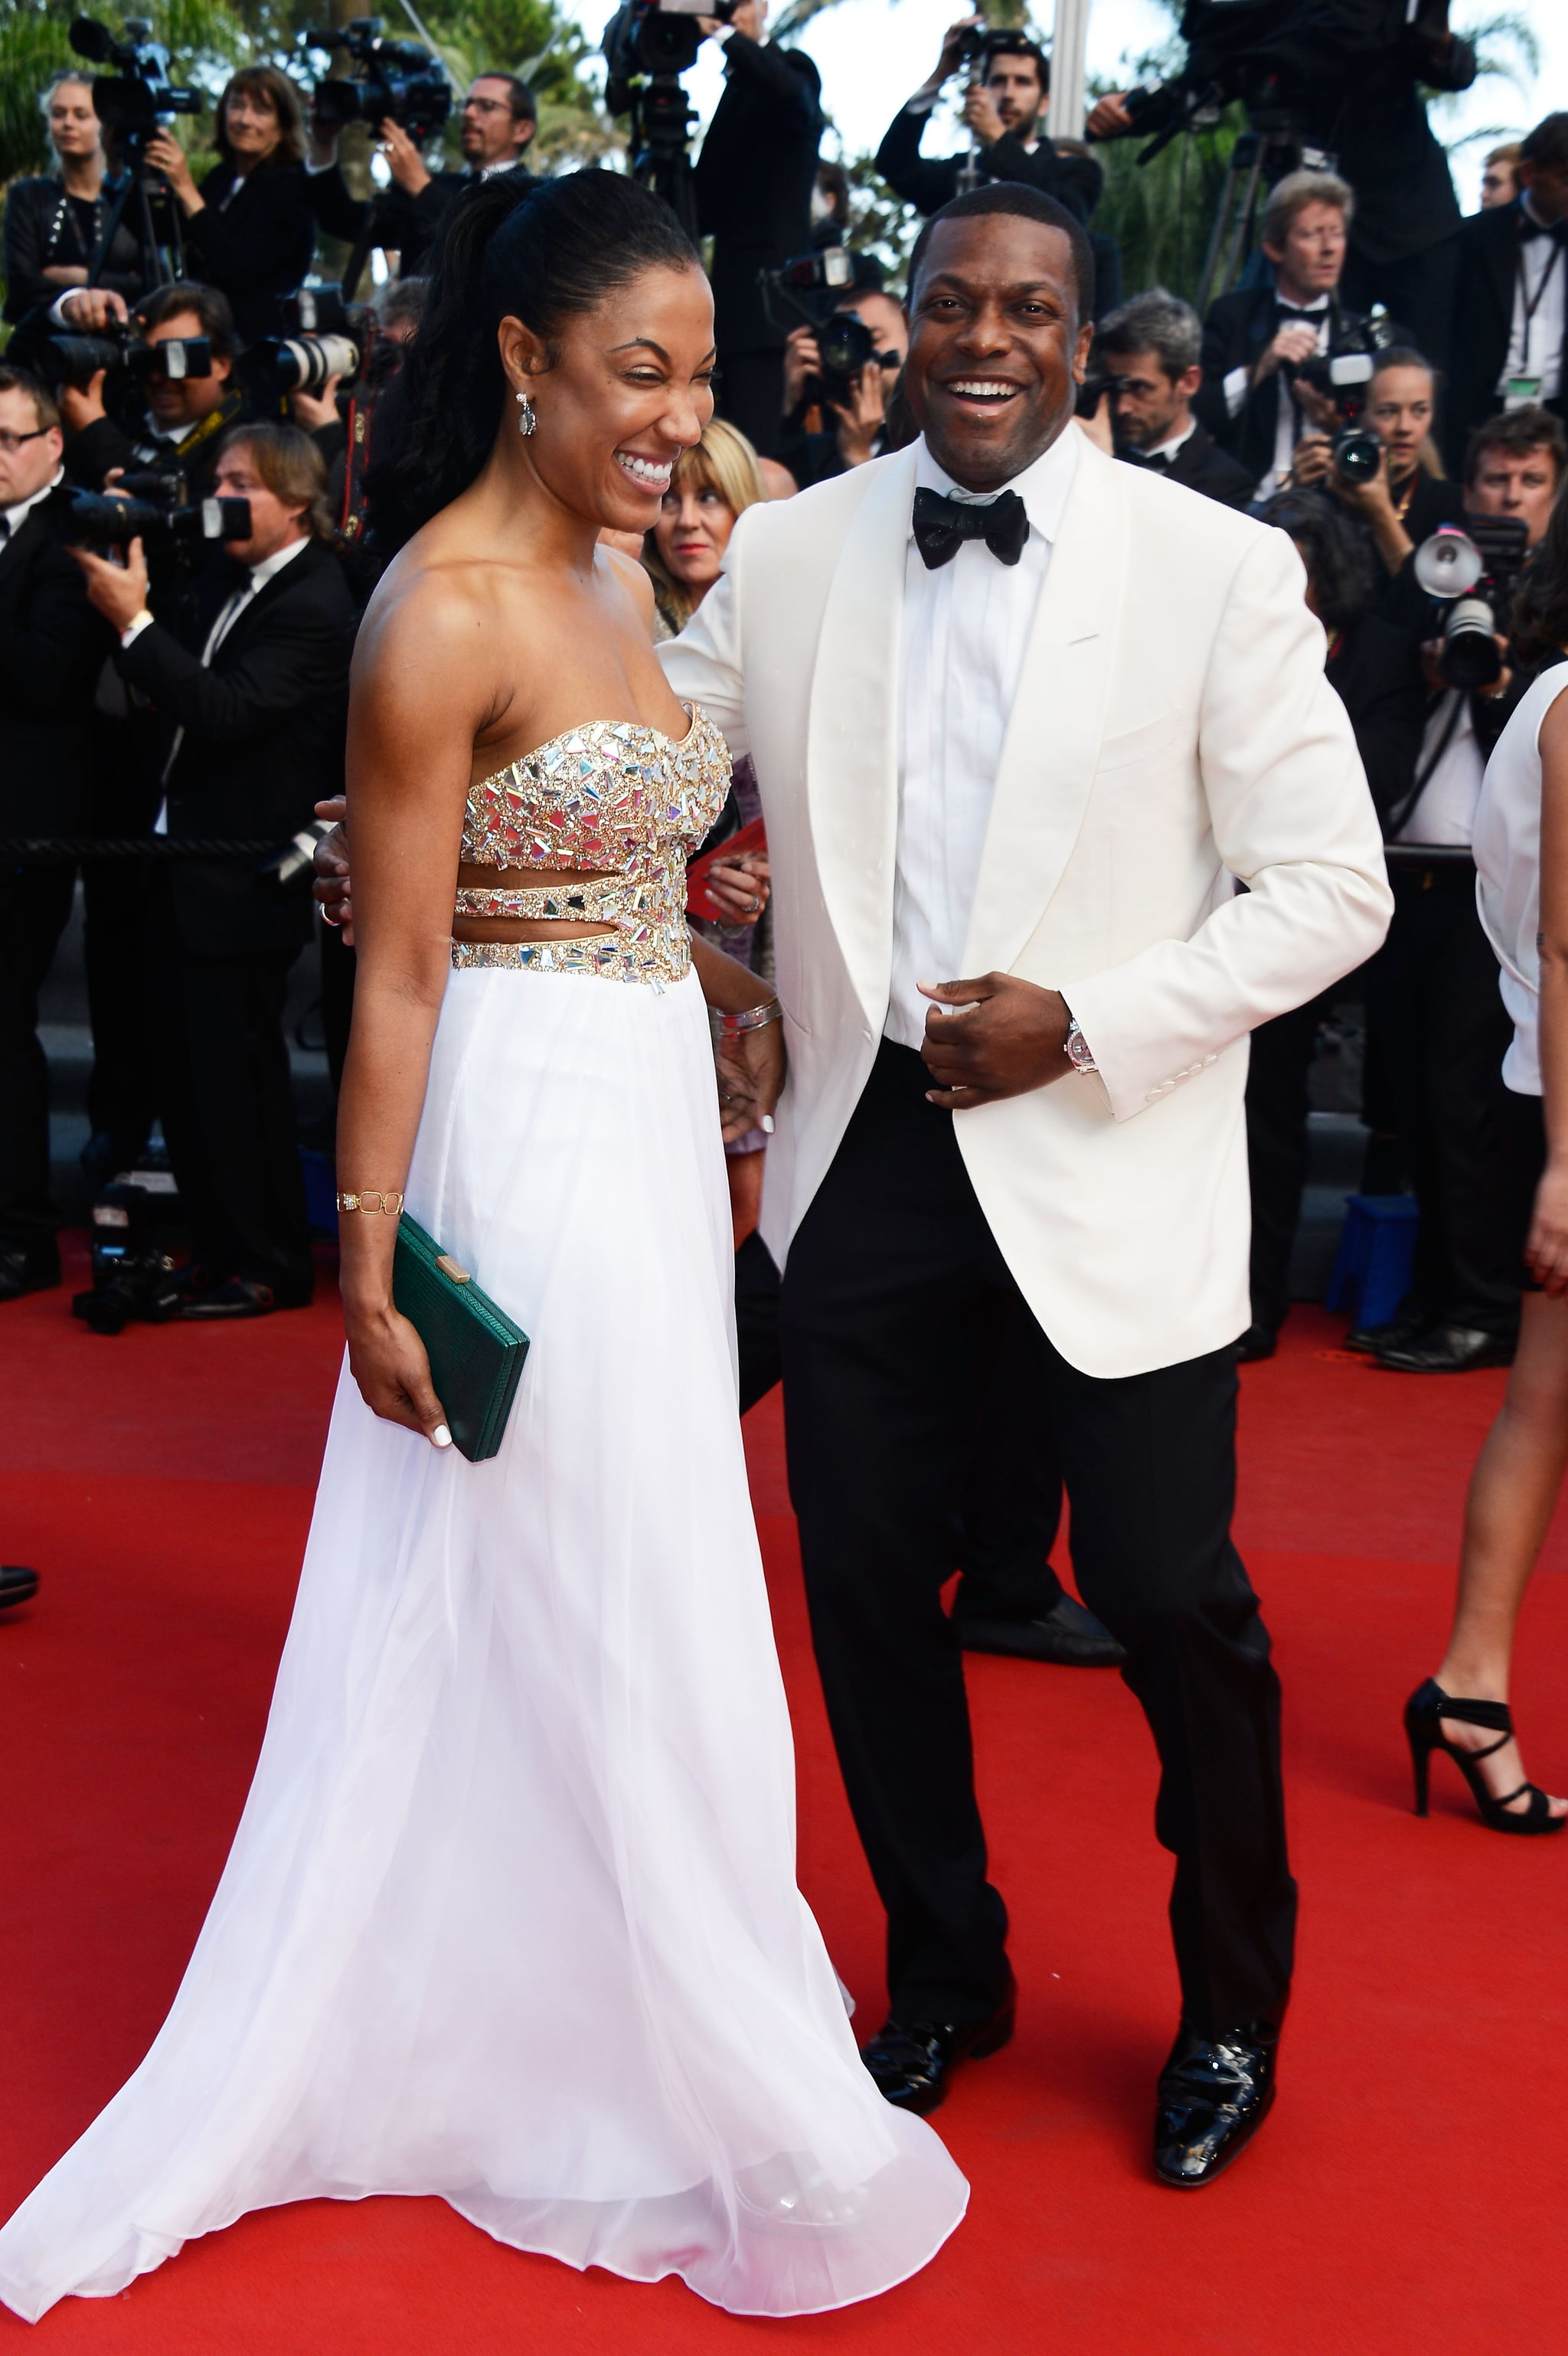 Chris Tucker brought a date to the Cannes Film Festival premiere of Cleopatra on Tuesday.